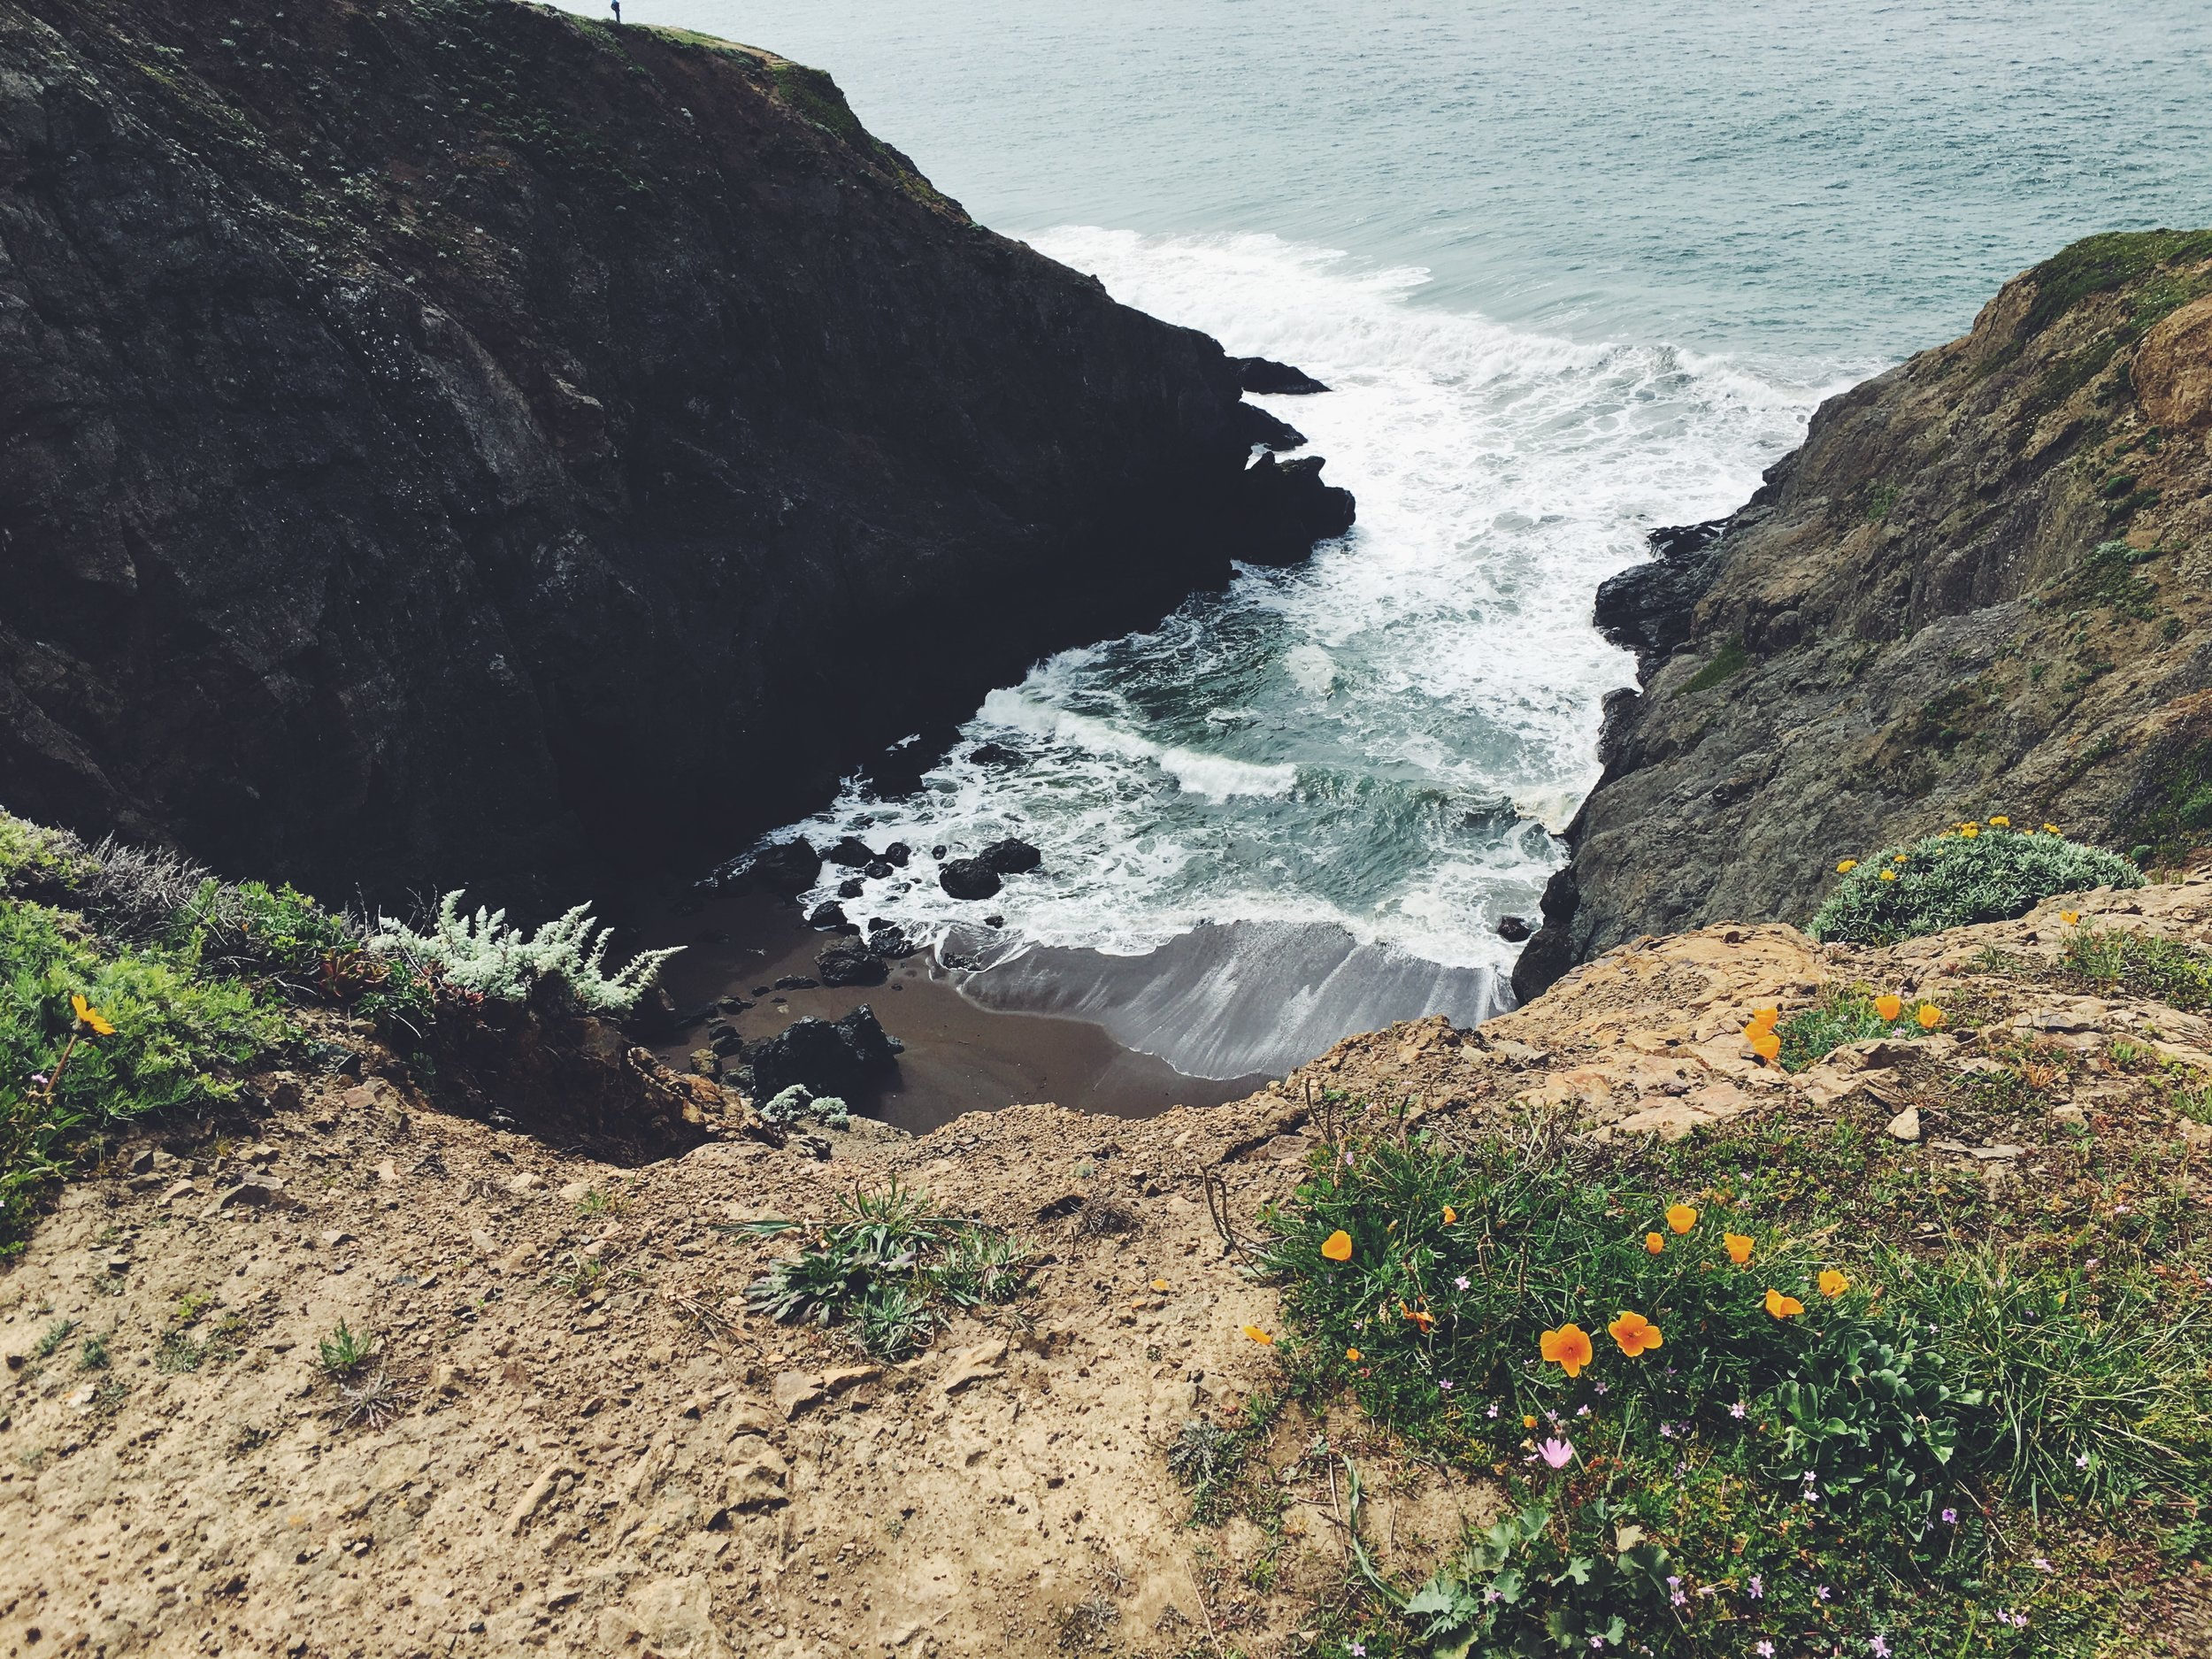 Taken by me at Marin Headlands by San Francisco